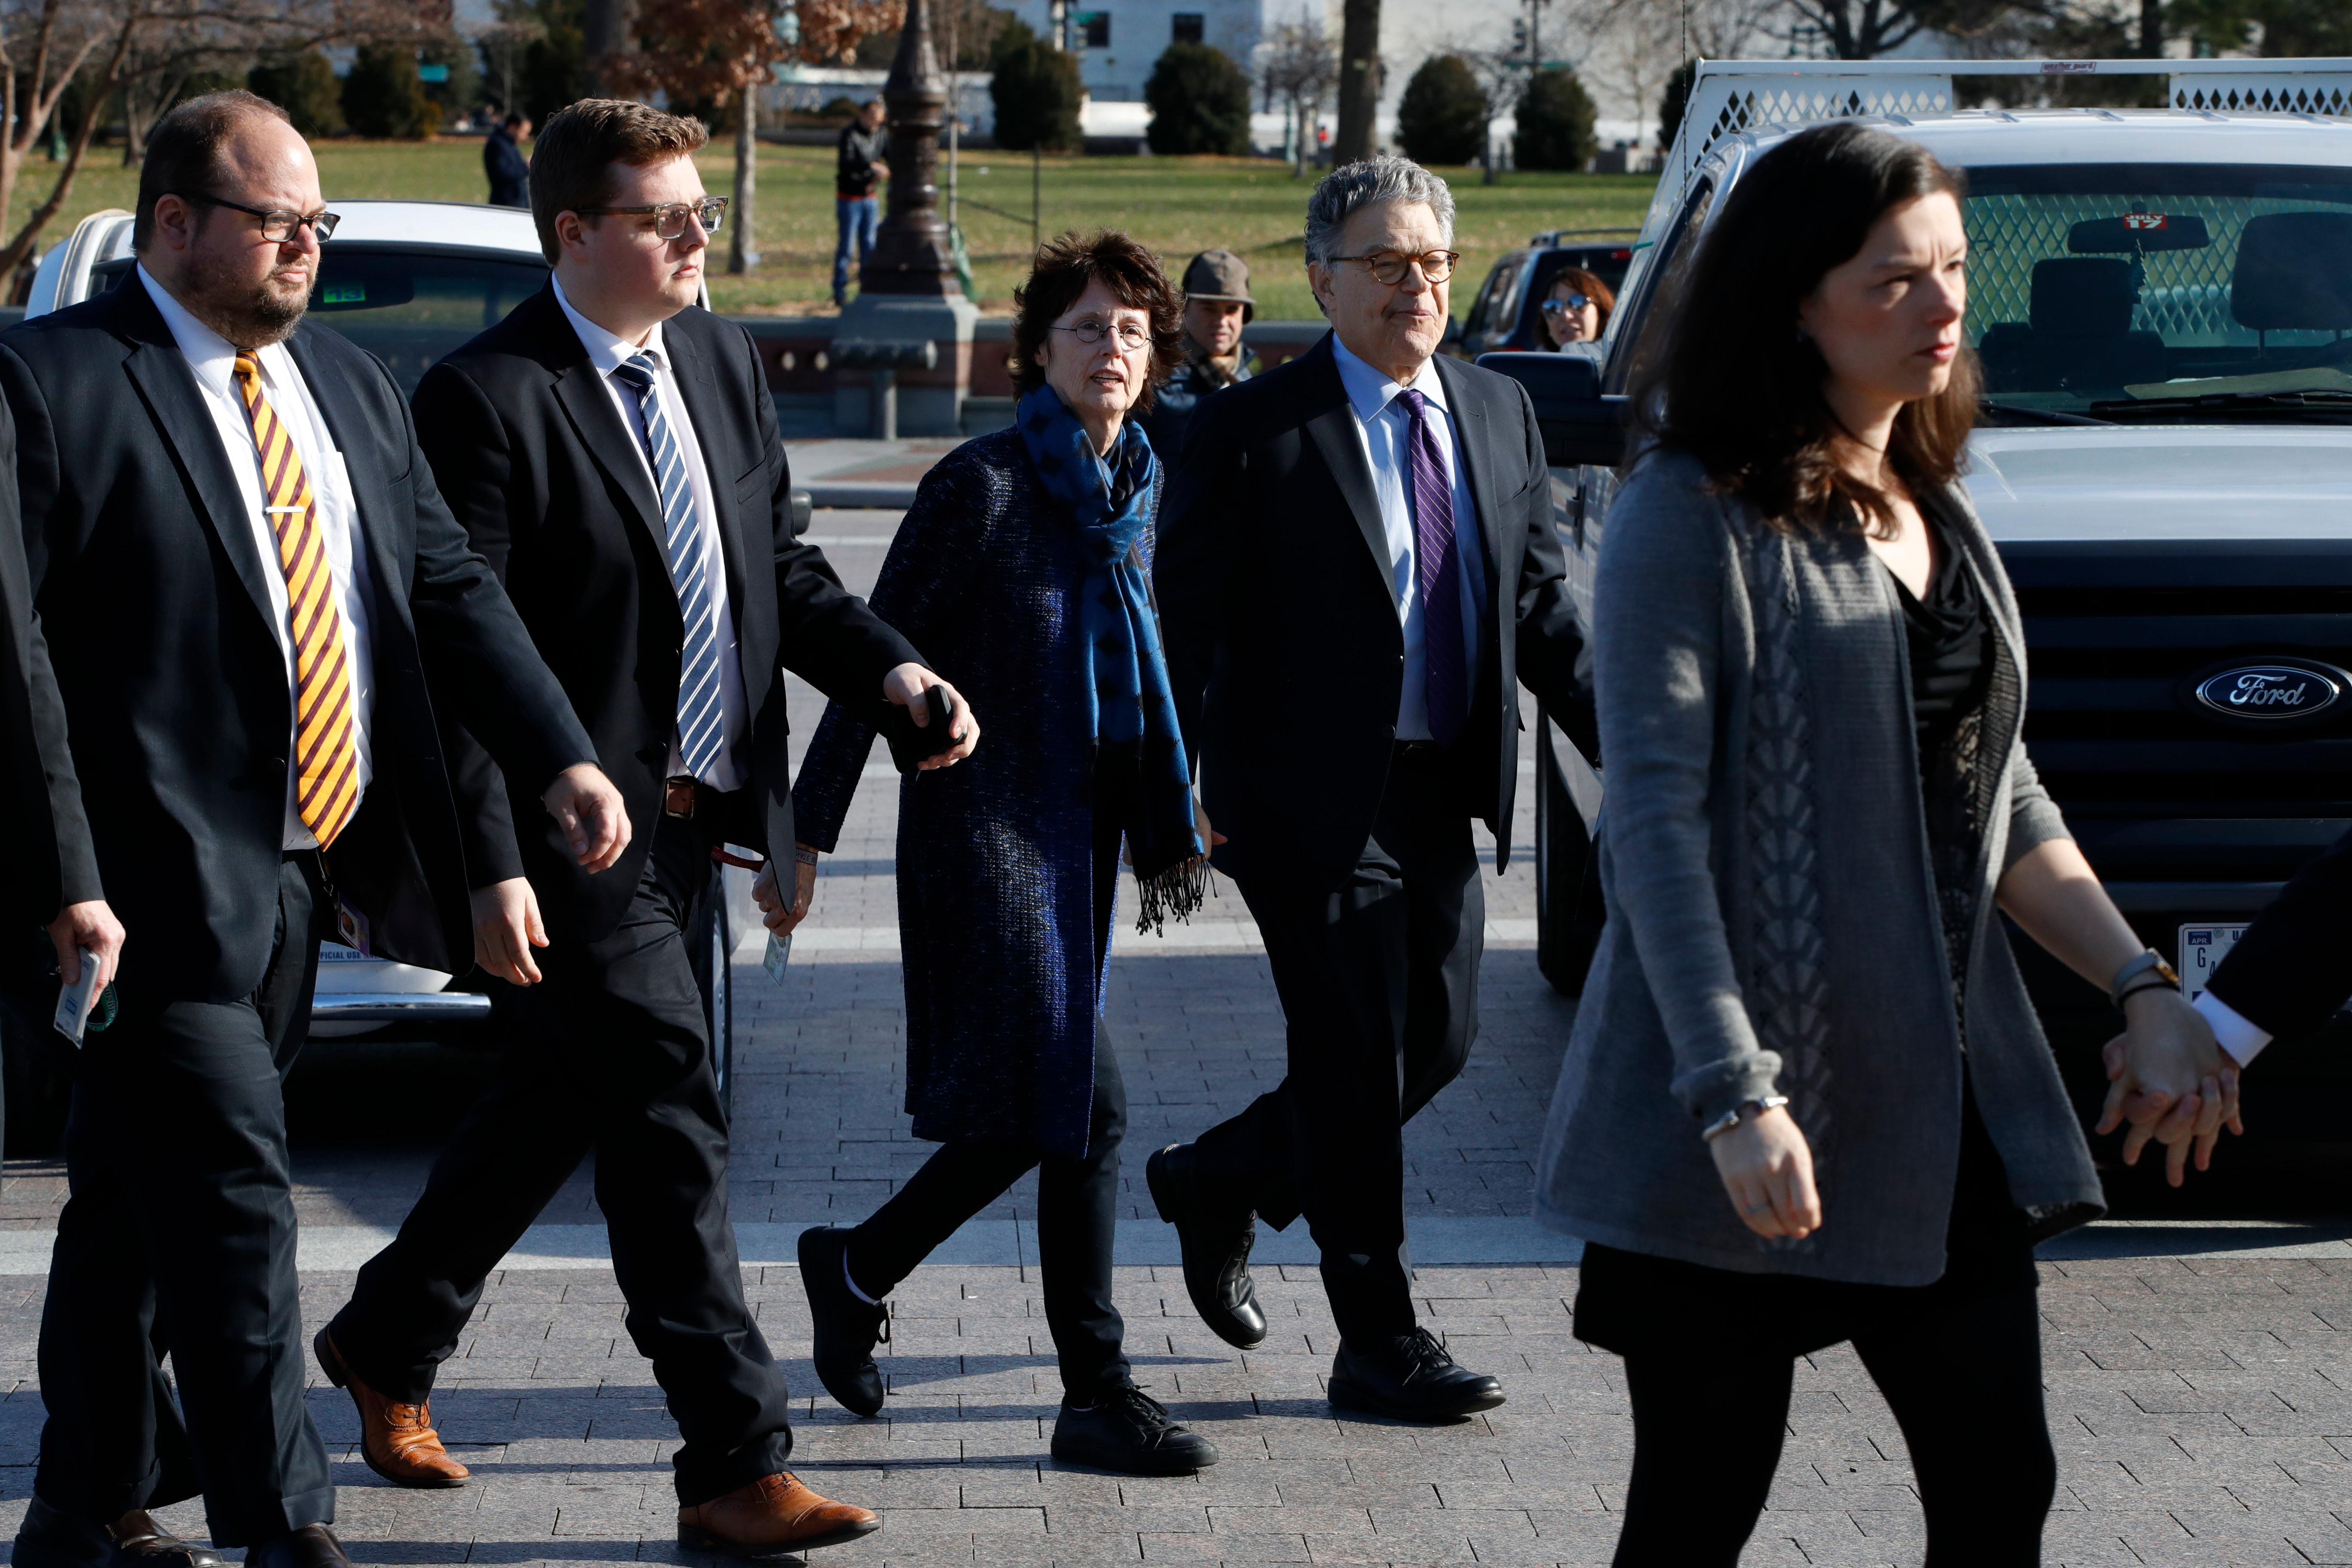 Sen. Al Franken, D-Minn., arrives with his wife, Franni Bryson to the Capitol, Thursday, Dec. 7, 2017, on Capitol Hill in Washington. Franken said he will resign from the Senate in coming weeks following a wave of sexual misconduct allegations and a collapse of support from his Democratic colleagues, a swift political fall for a once-rising Democratic star. (AP Photo/Jacquelyn Martin)